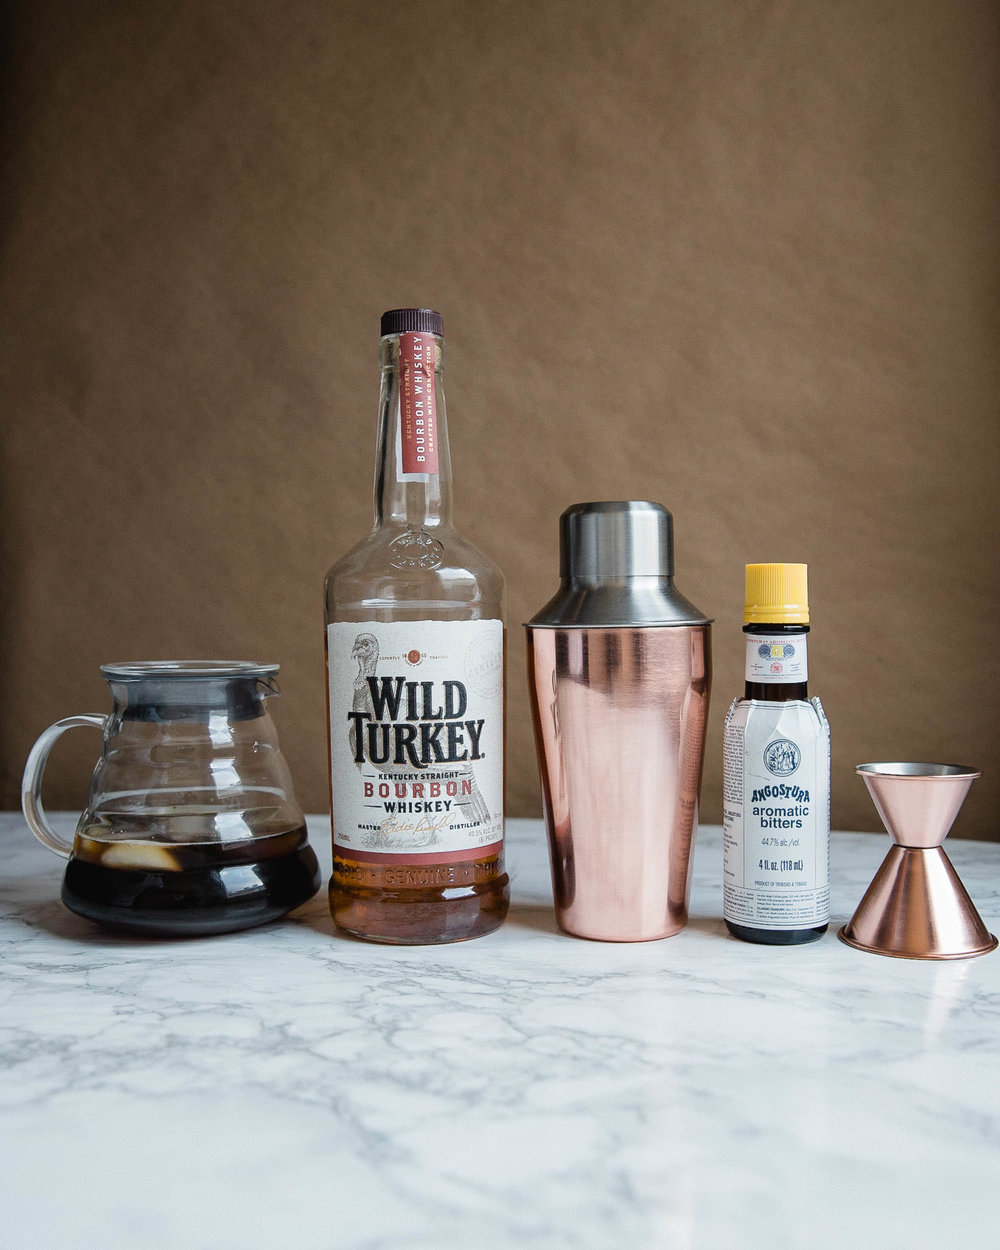 Ingredients for coffee and whiskey cocktail